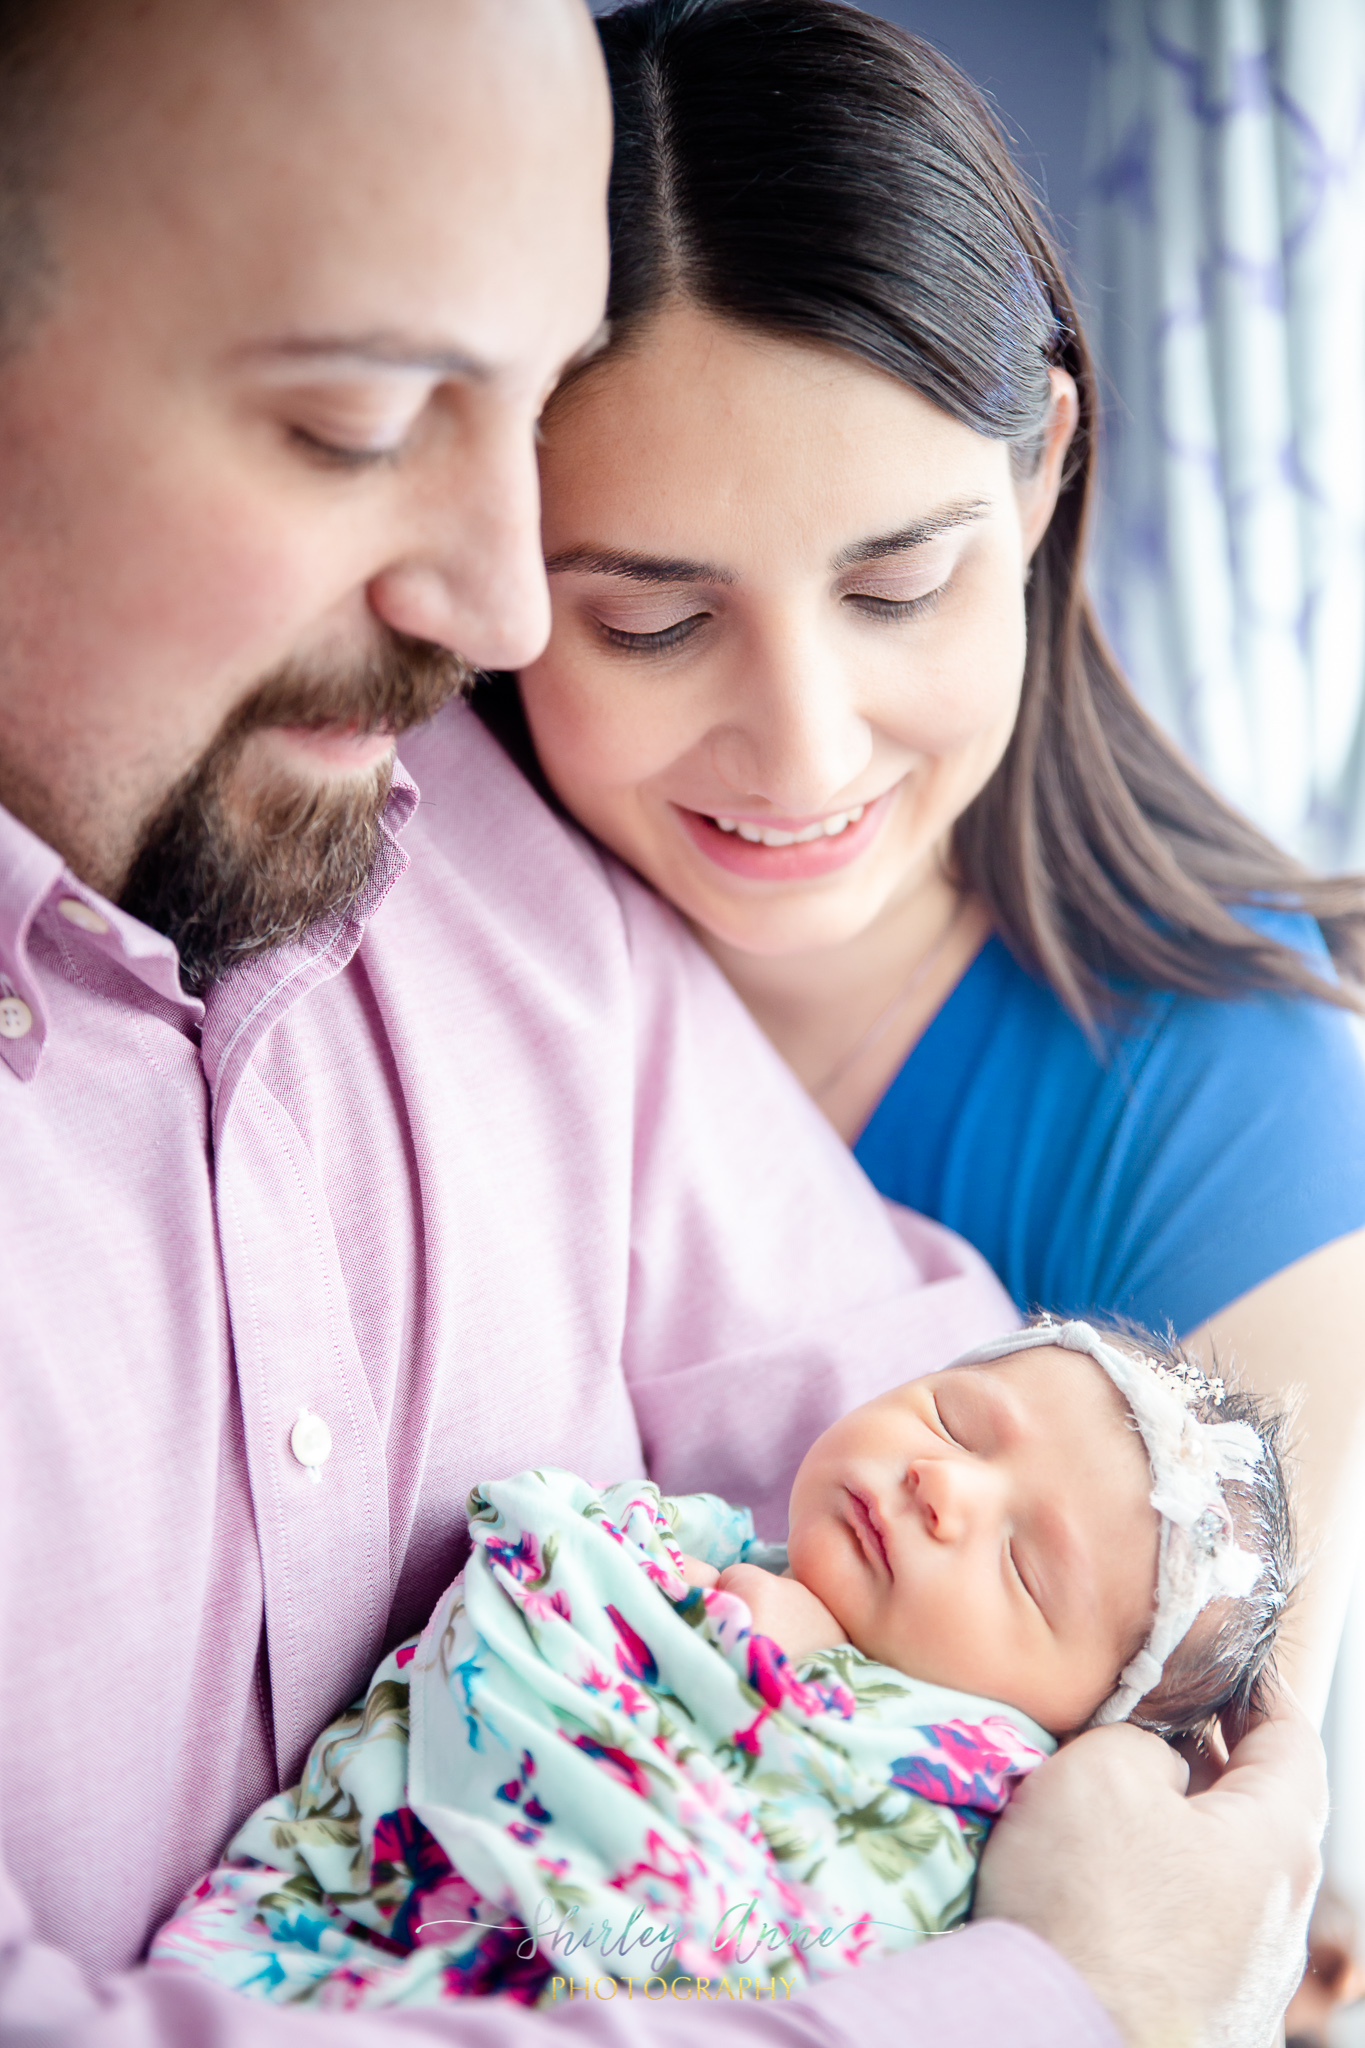 Balca-Newborn-Sneak Peek (1 of 1).jpg